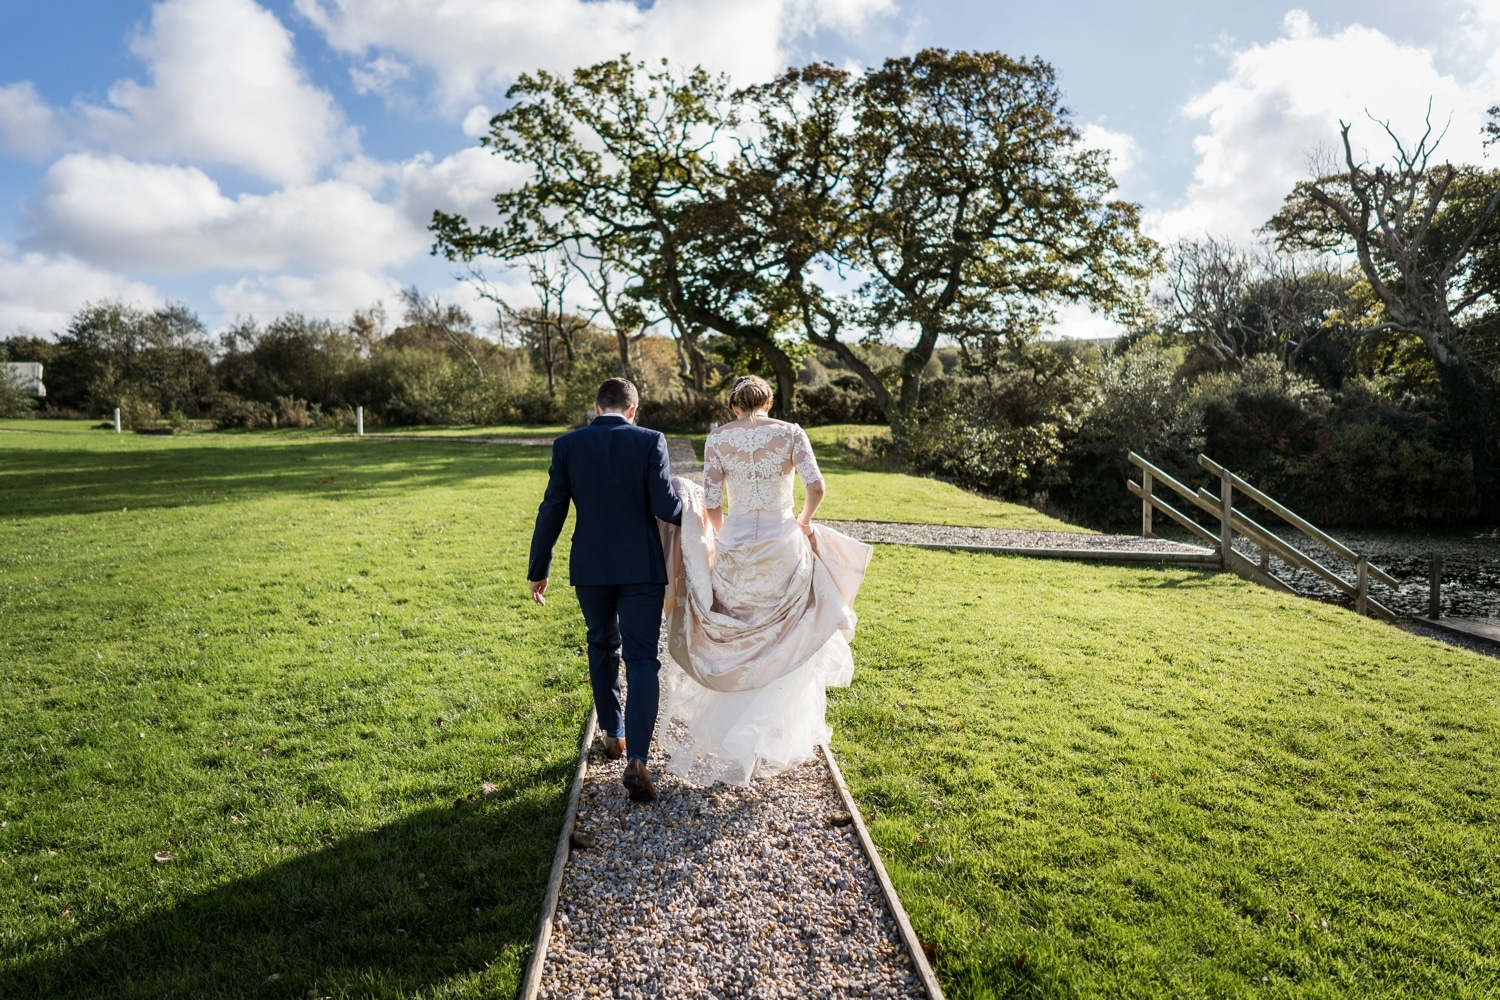 Wedding photography at Oldwalls, South Wales